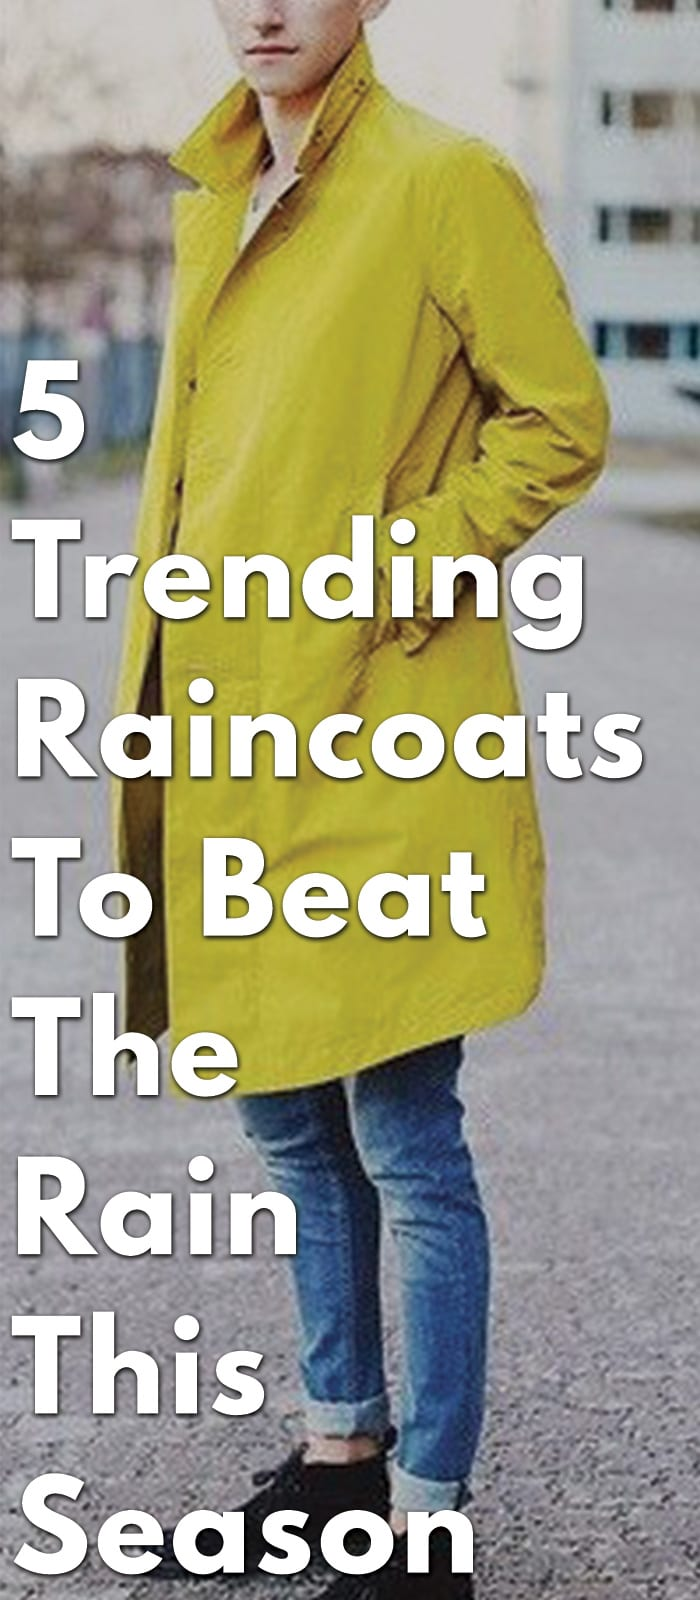 5-Trending-Raincoats-To-Beat-The-Rain-This-Season